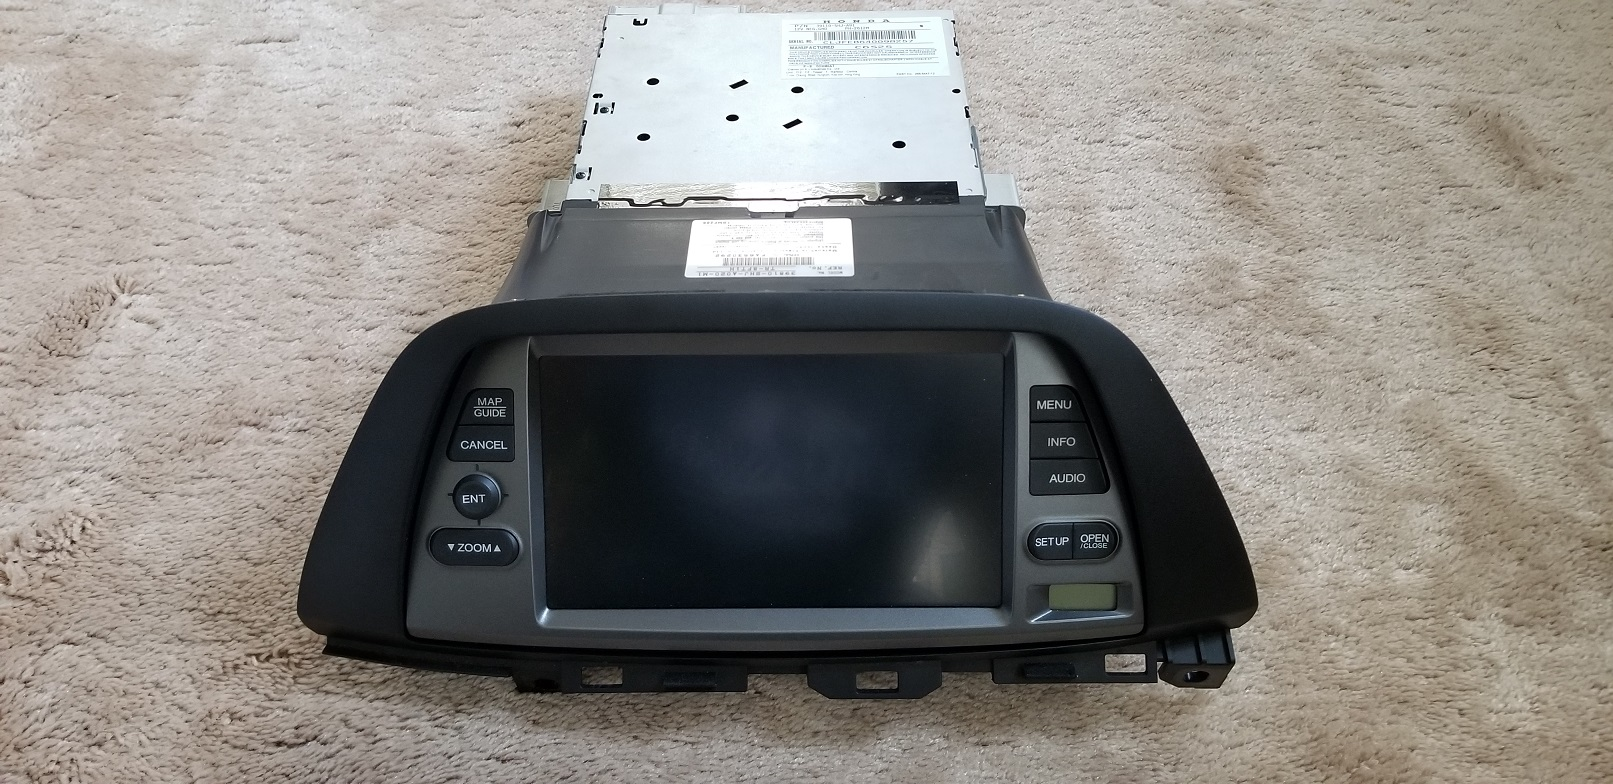 Radio  Gps  And Entertainment System For 2007 Honda Odyssey